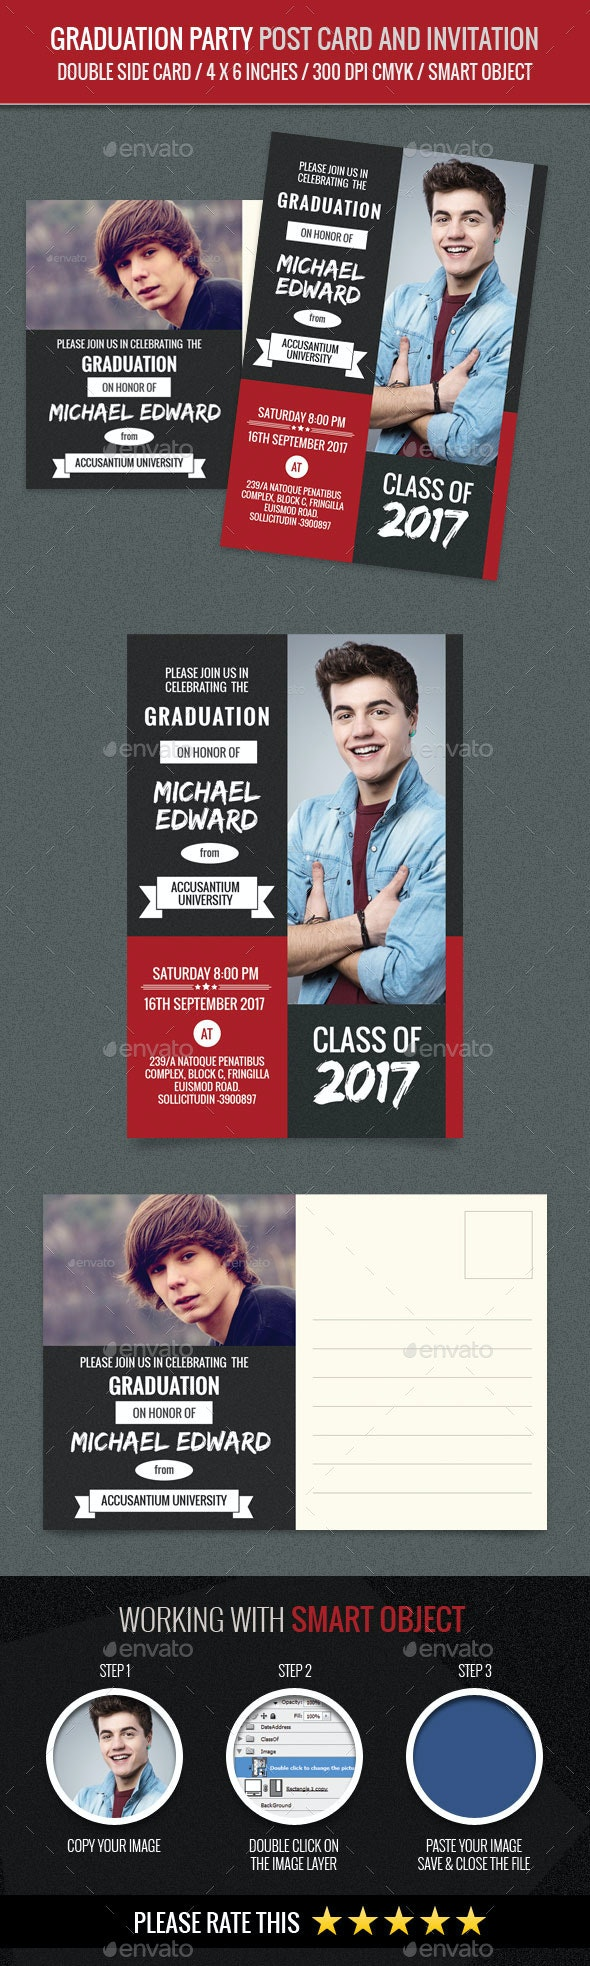 Graduation Party Post Card and Invitation Card Tem - Cards & Invites Print Templates